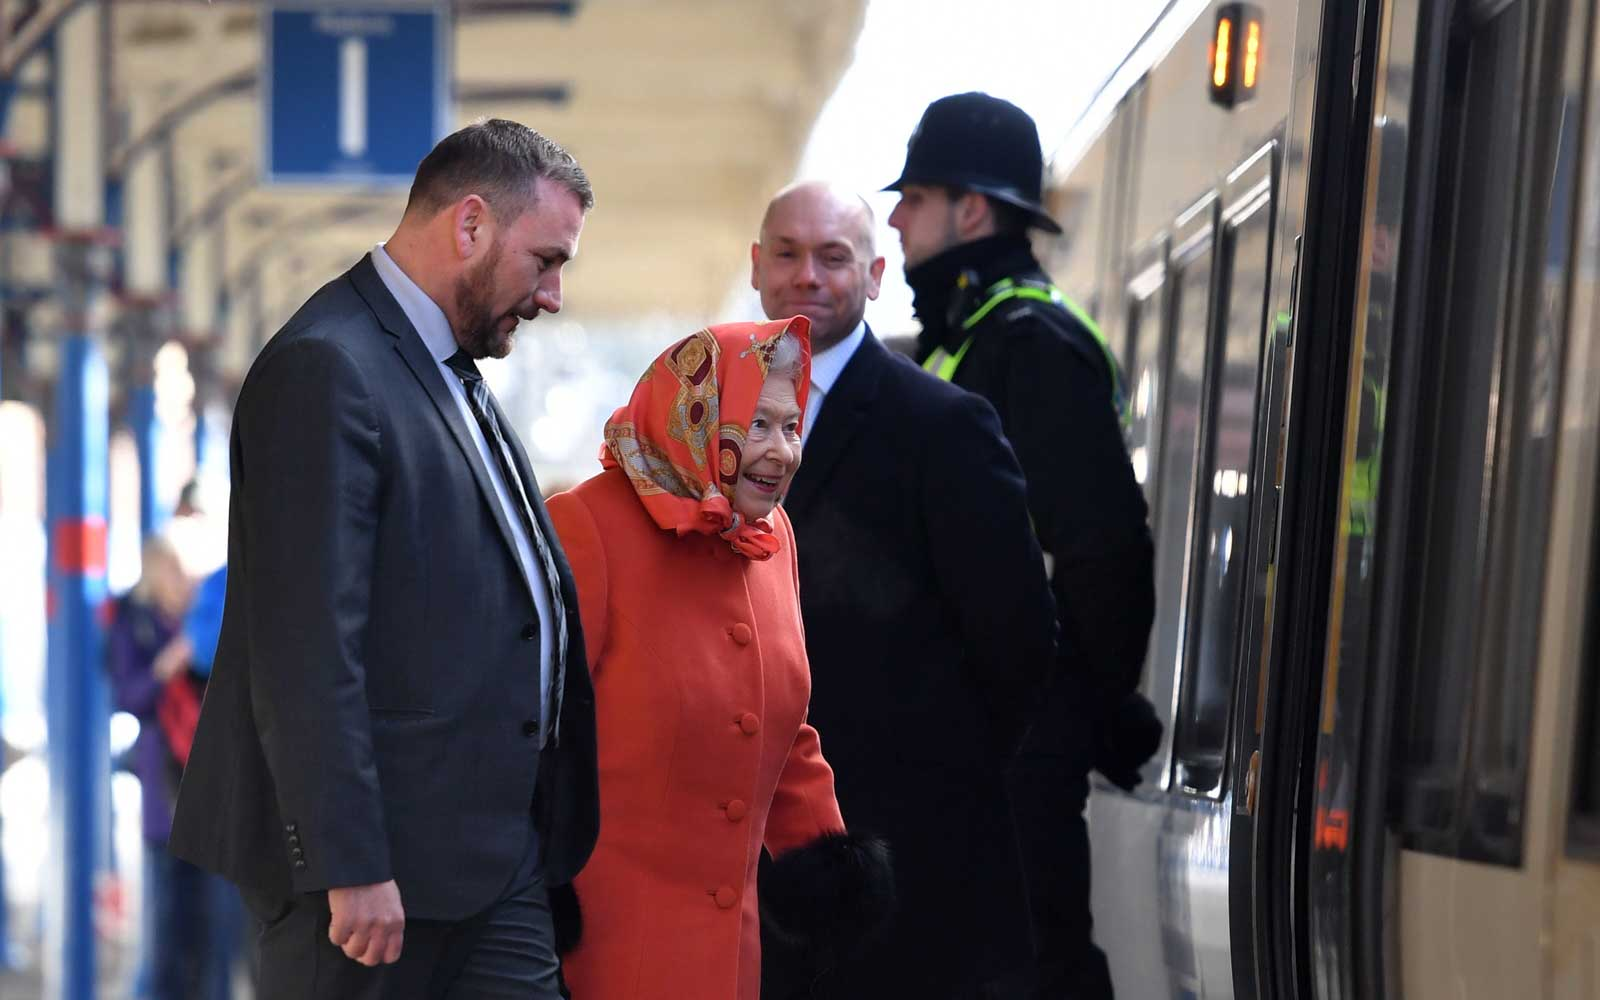 The Queen of England Just Took Public Transportation Like the Rest of Us